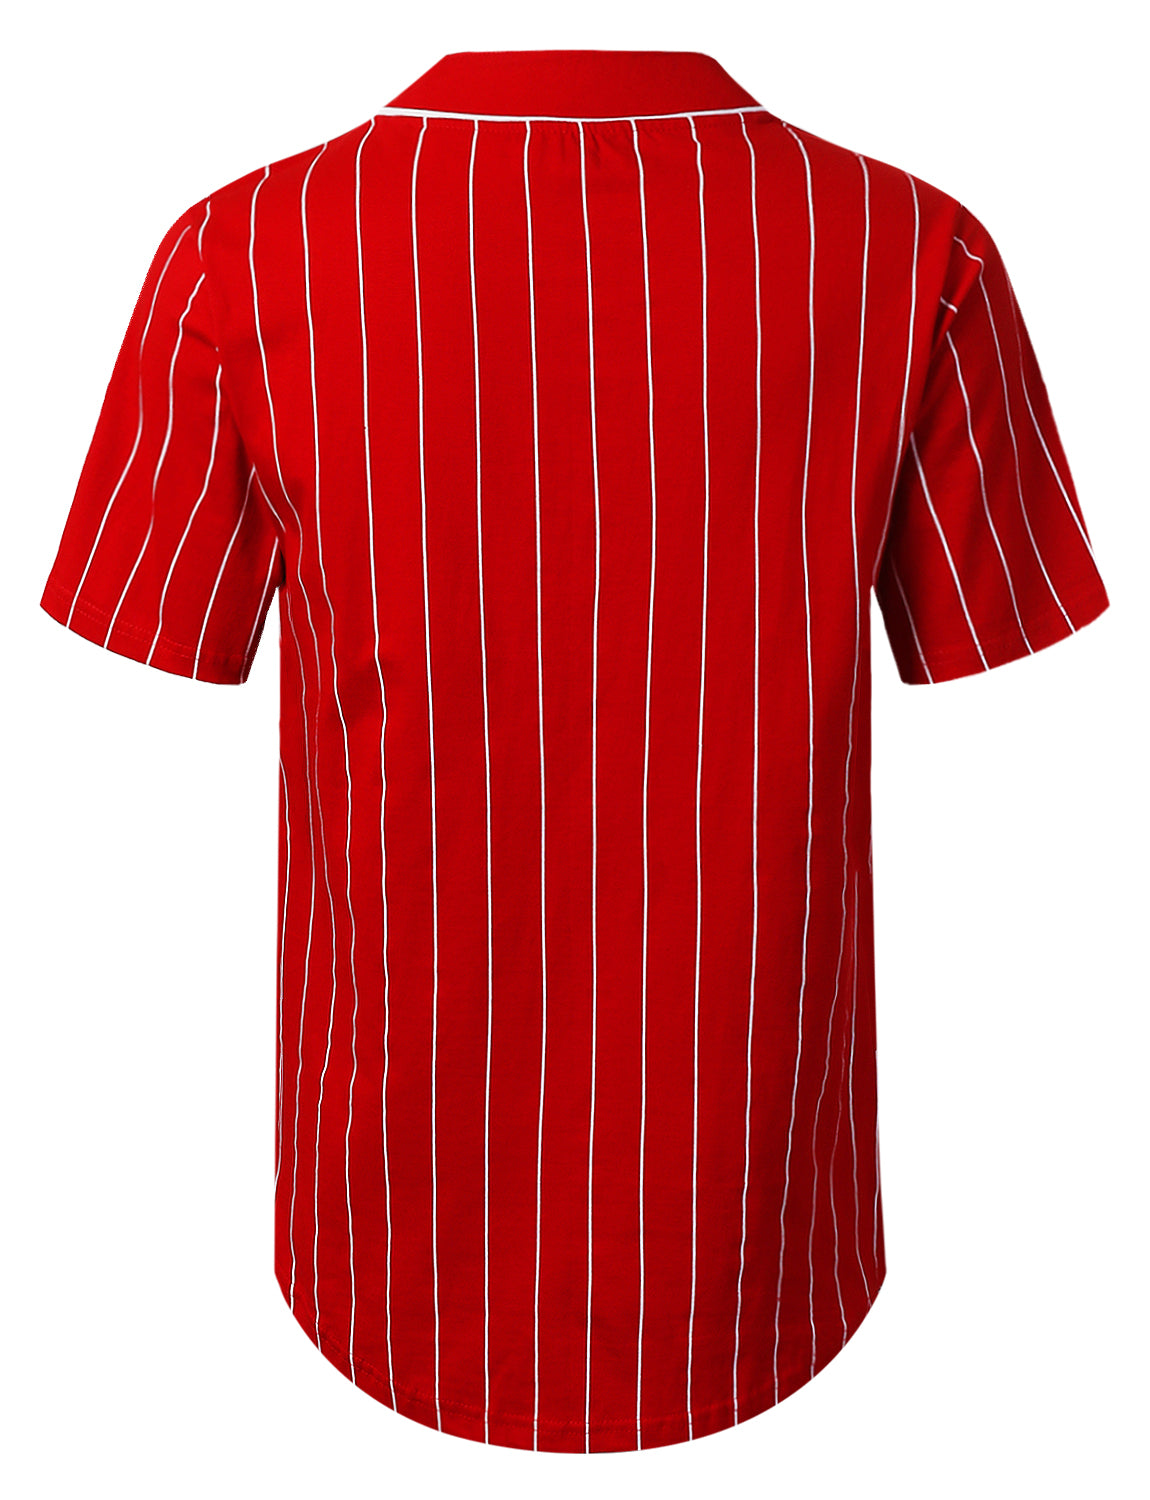 RED Striped Baseball Jersey Shirt - URBANCREWS